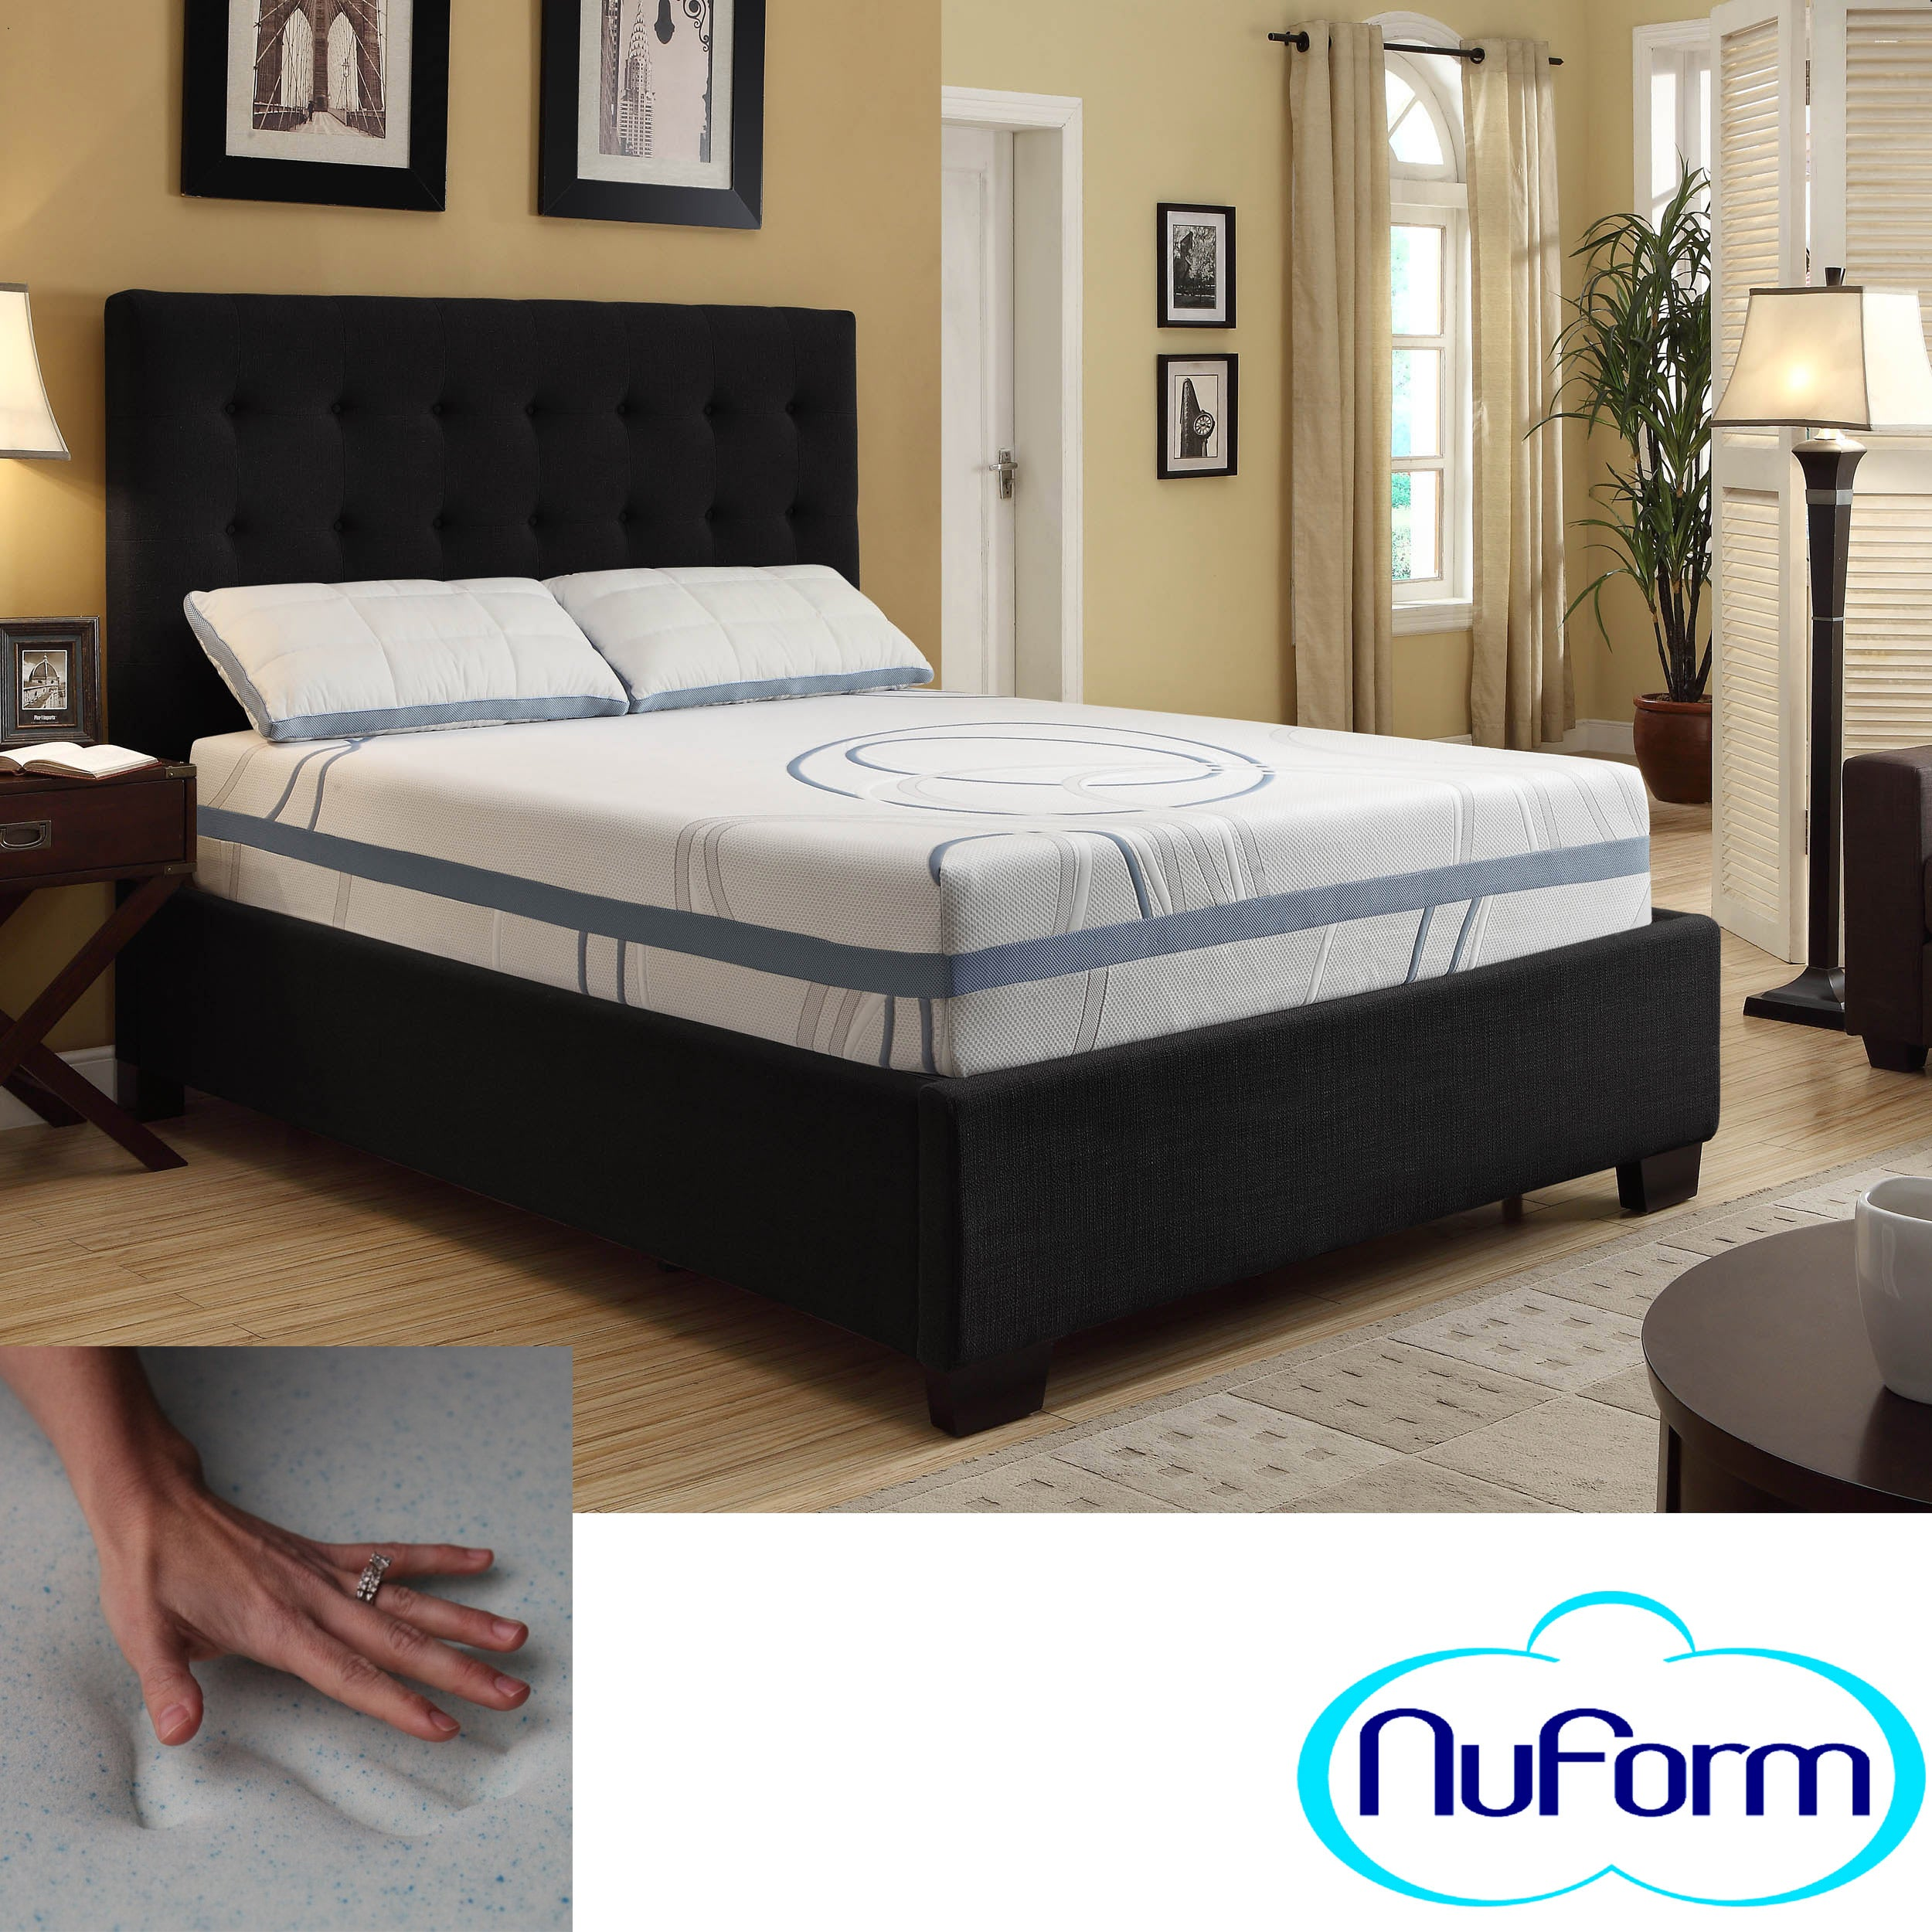 image result for queen size memory foam mattress topper costco